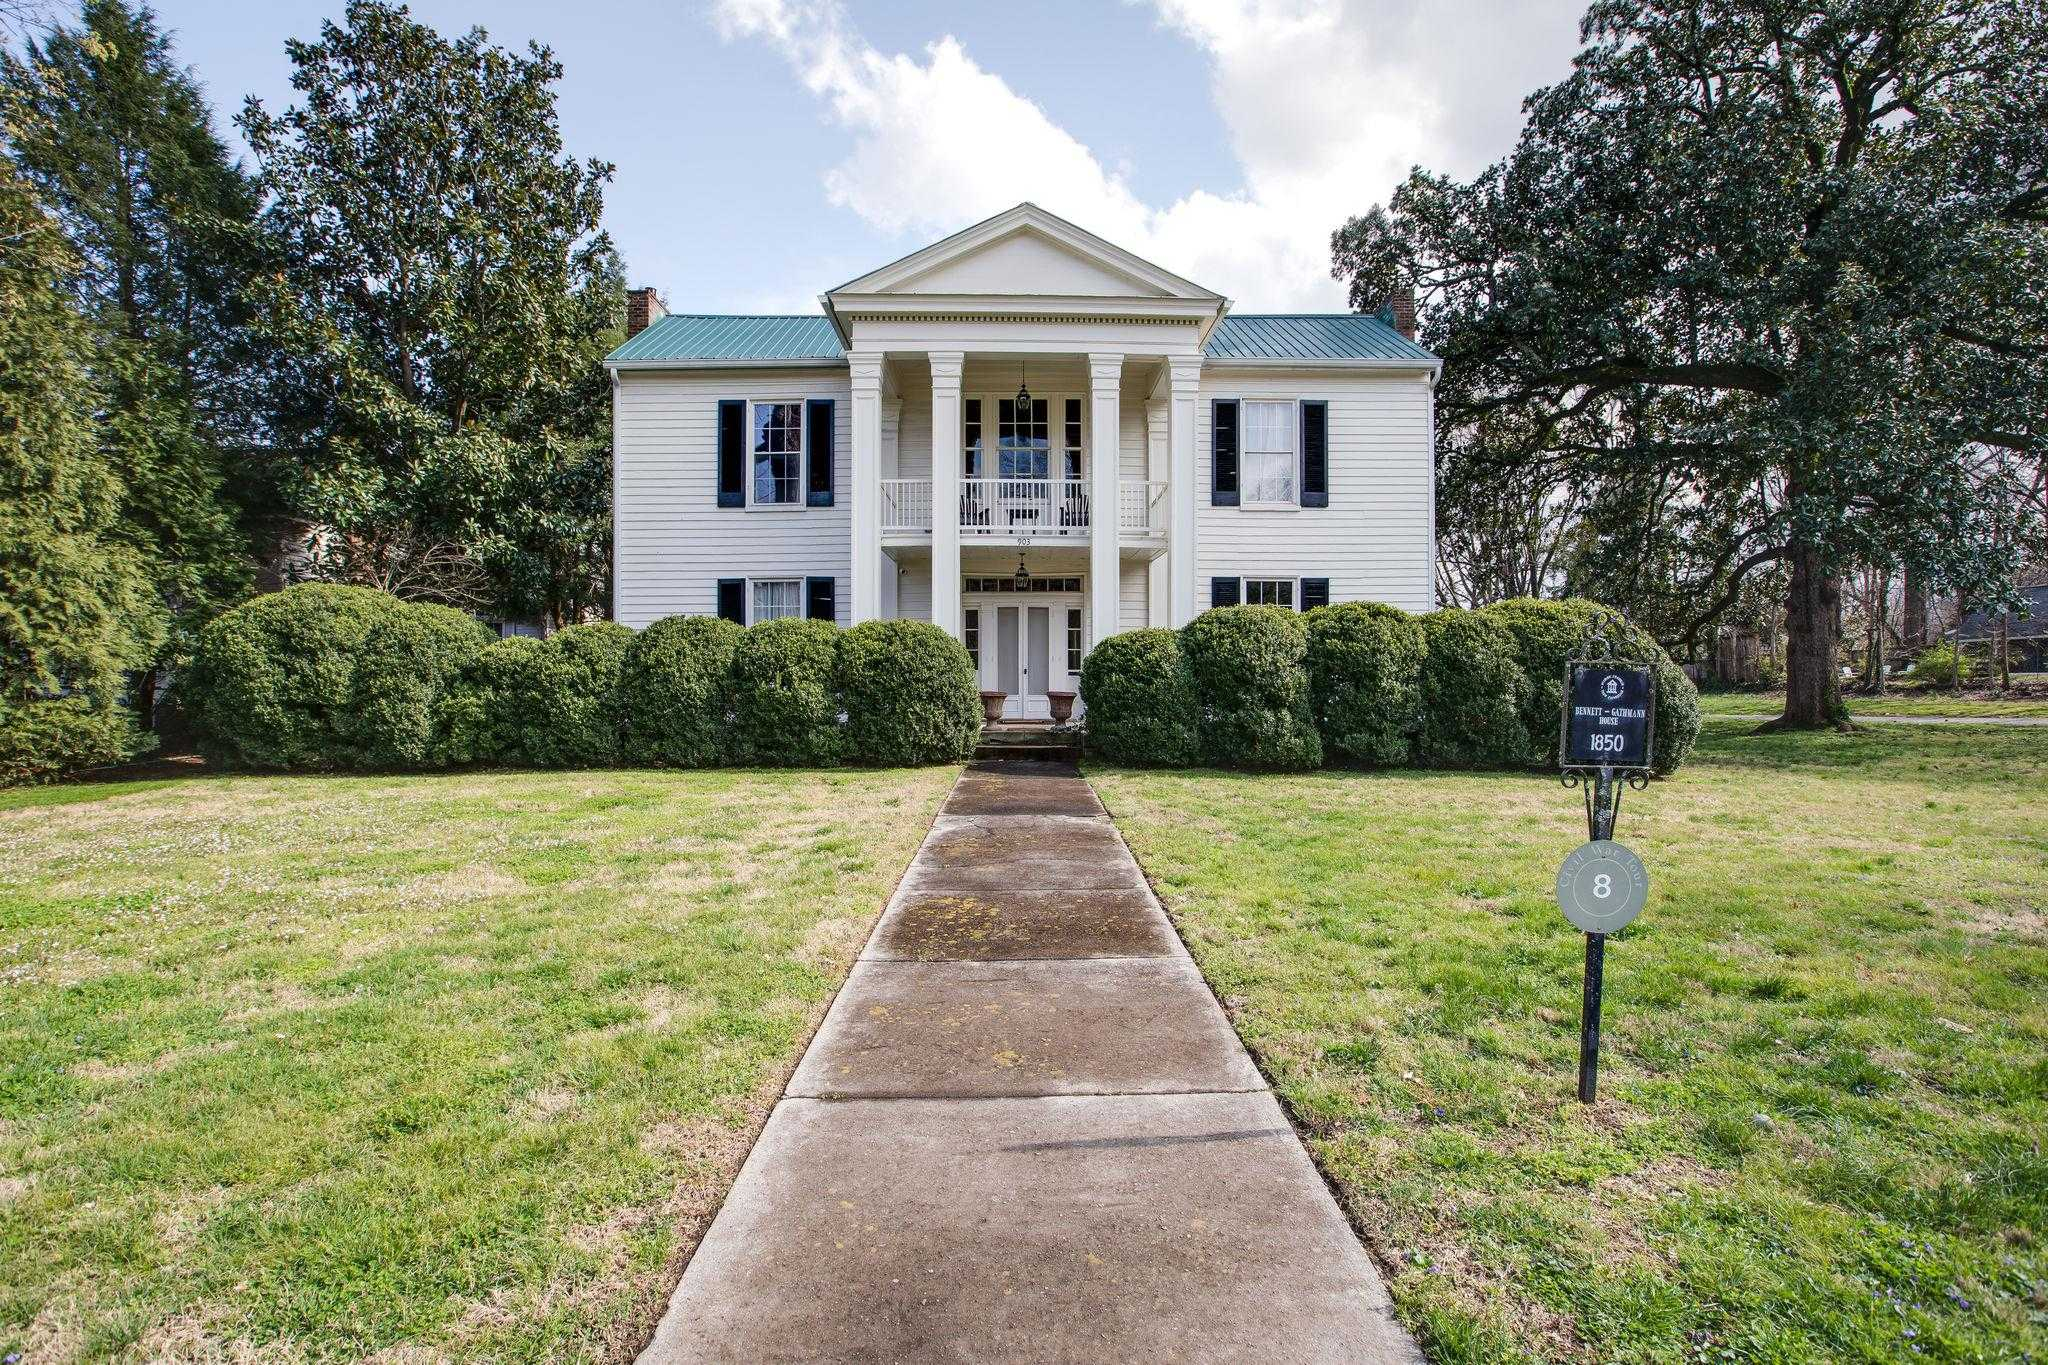 $2,350,000 - 4Br/4Ba -  for Sale in Perry William C, Franklin